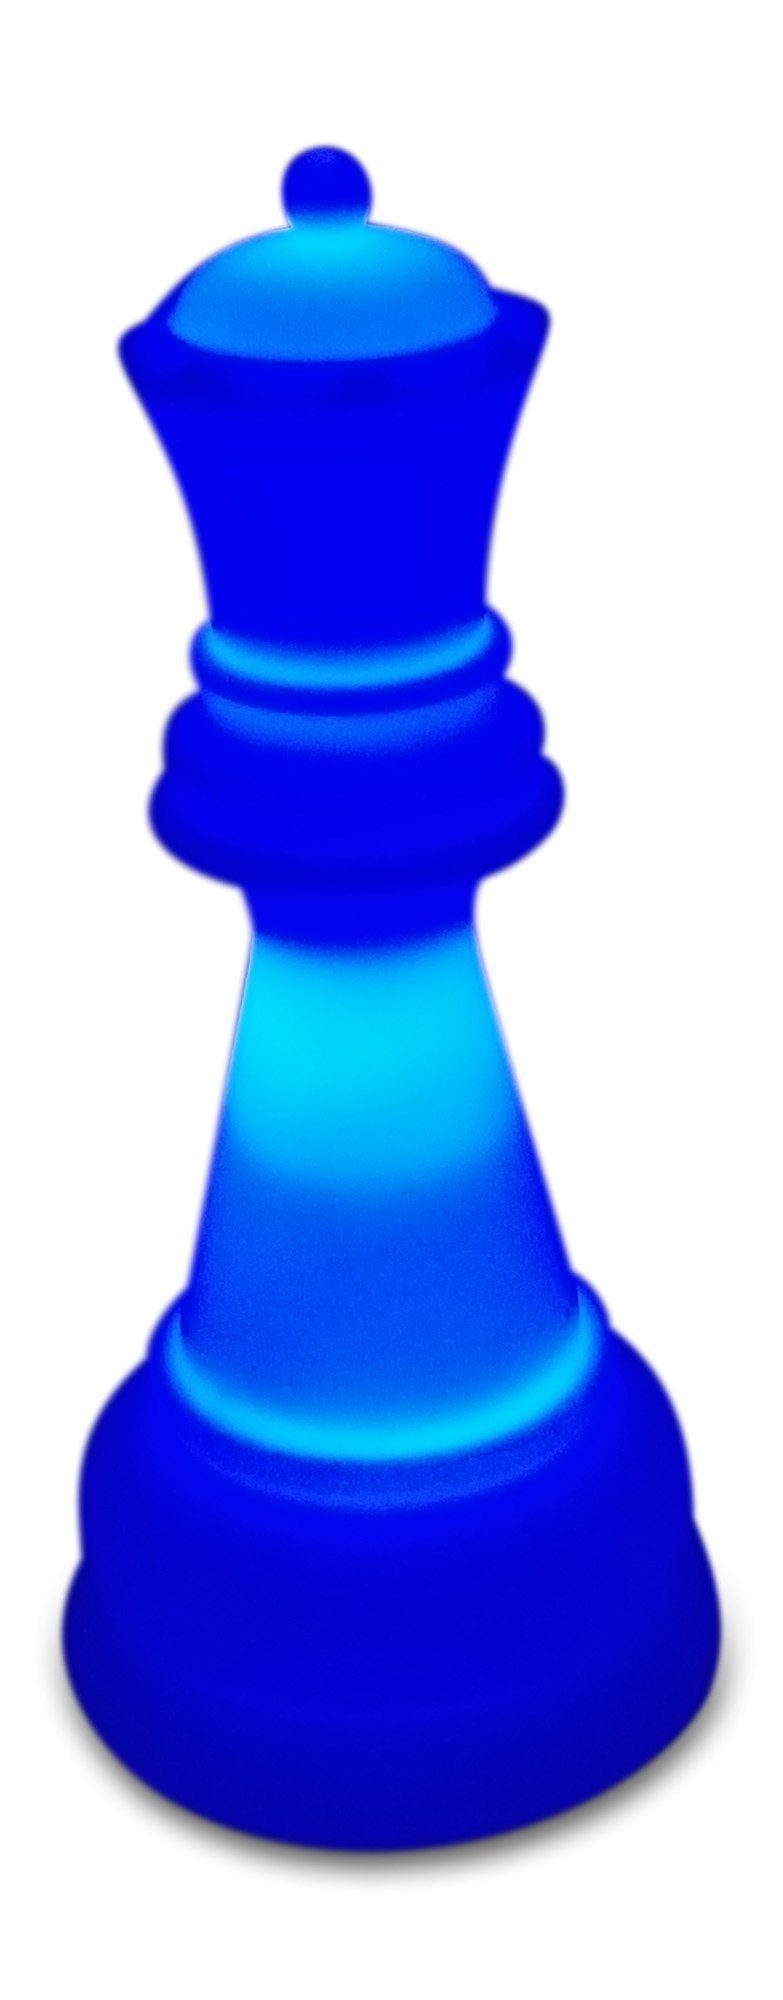 MegaChess 22 Inch Premium Plastic Queen Light-Up Giant Chess Piece - Blue |  | GiantChessUSA